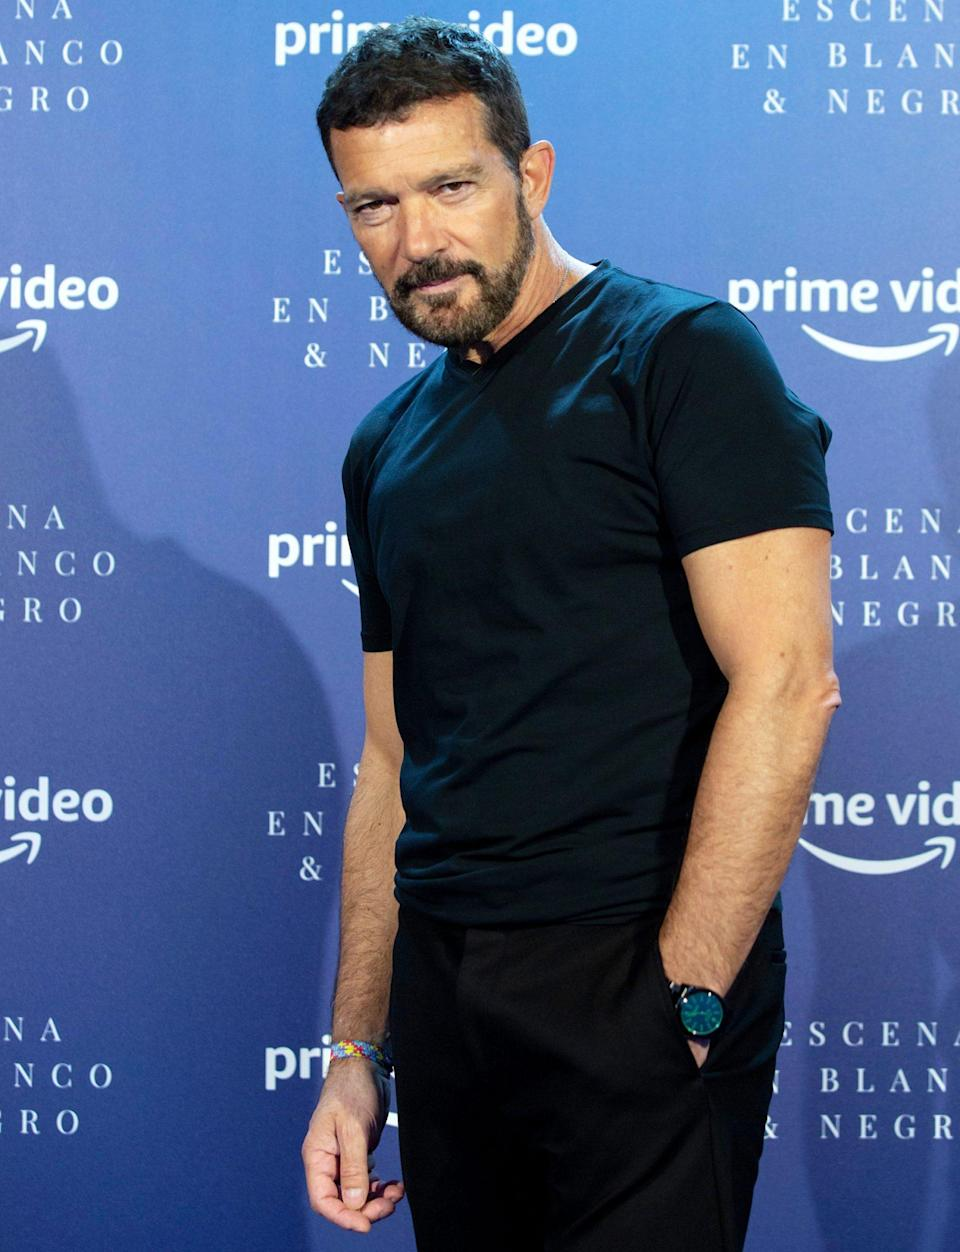 <p>Antonio Banderas strikes a pose at an Amazon Prime Video Event on Tuesday in Malaga, Spain. </p>